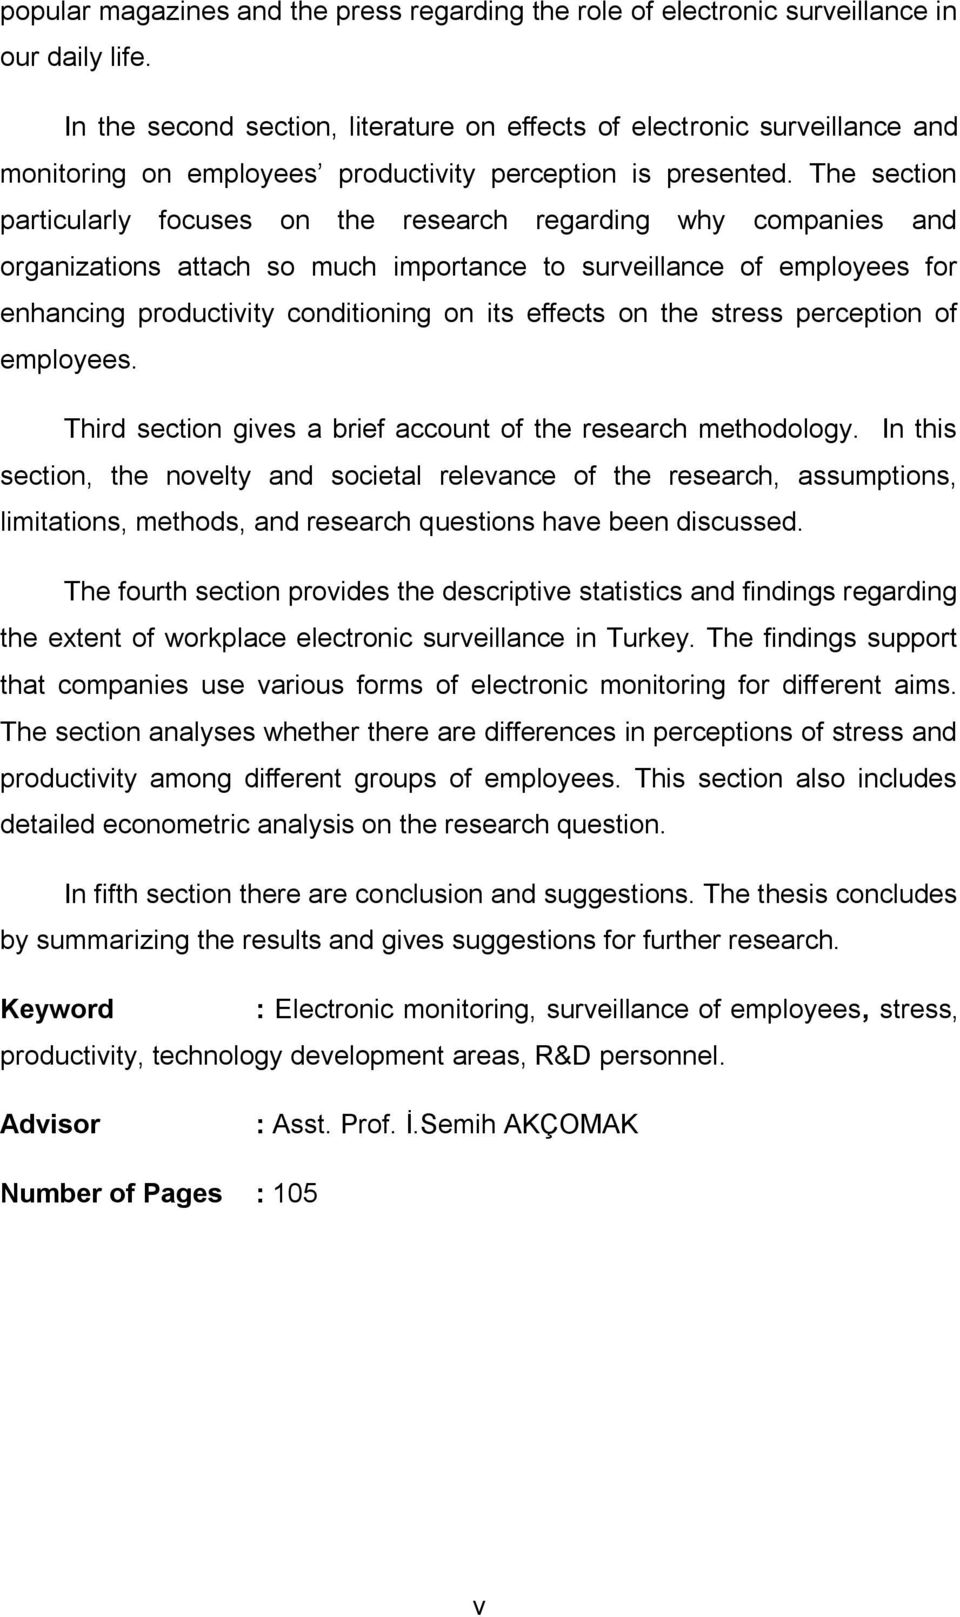 The section particularly focuses on the research regarding why companies and organizations attach so much importance to surveillance of employees for enhancing productivity conditioning on its